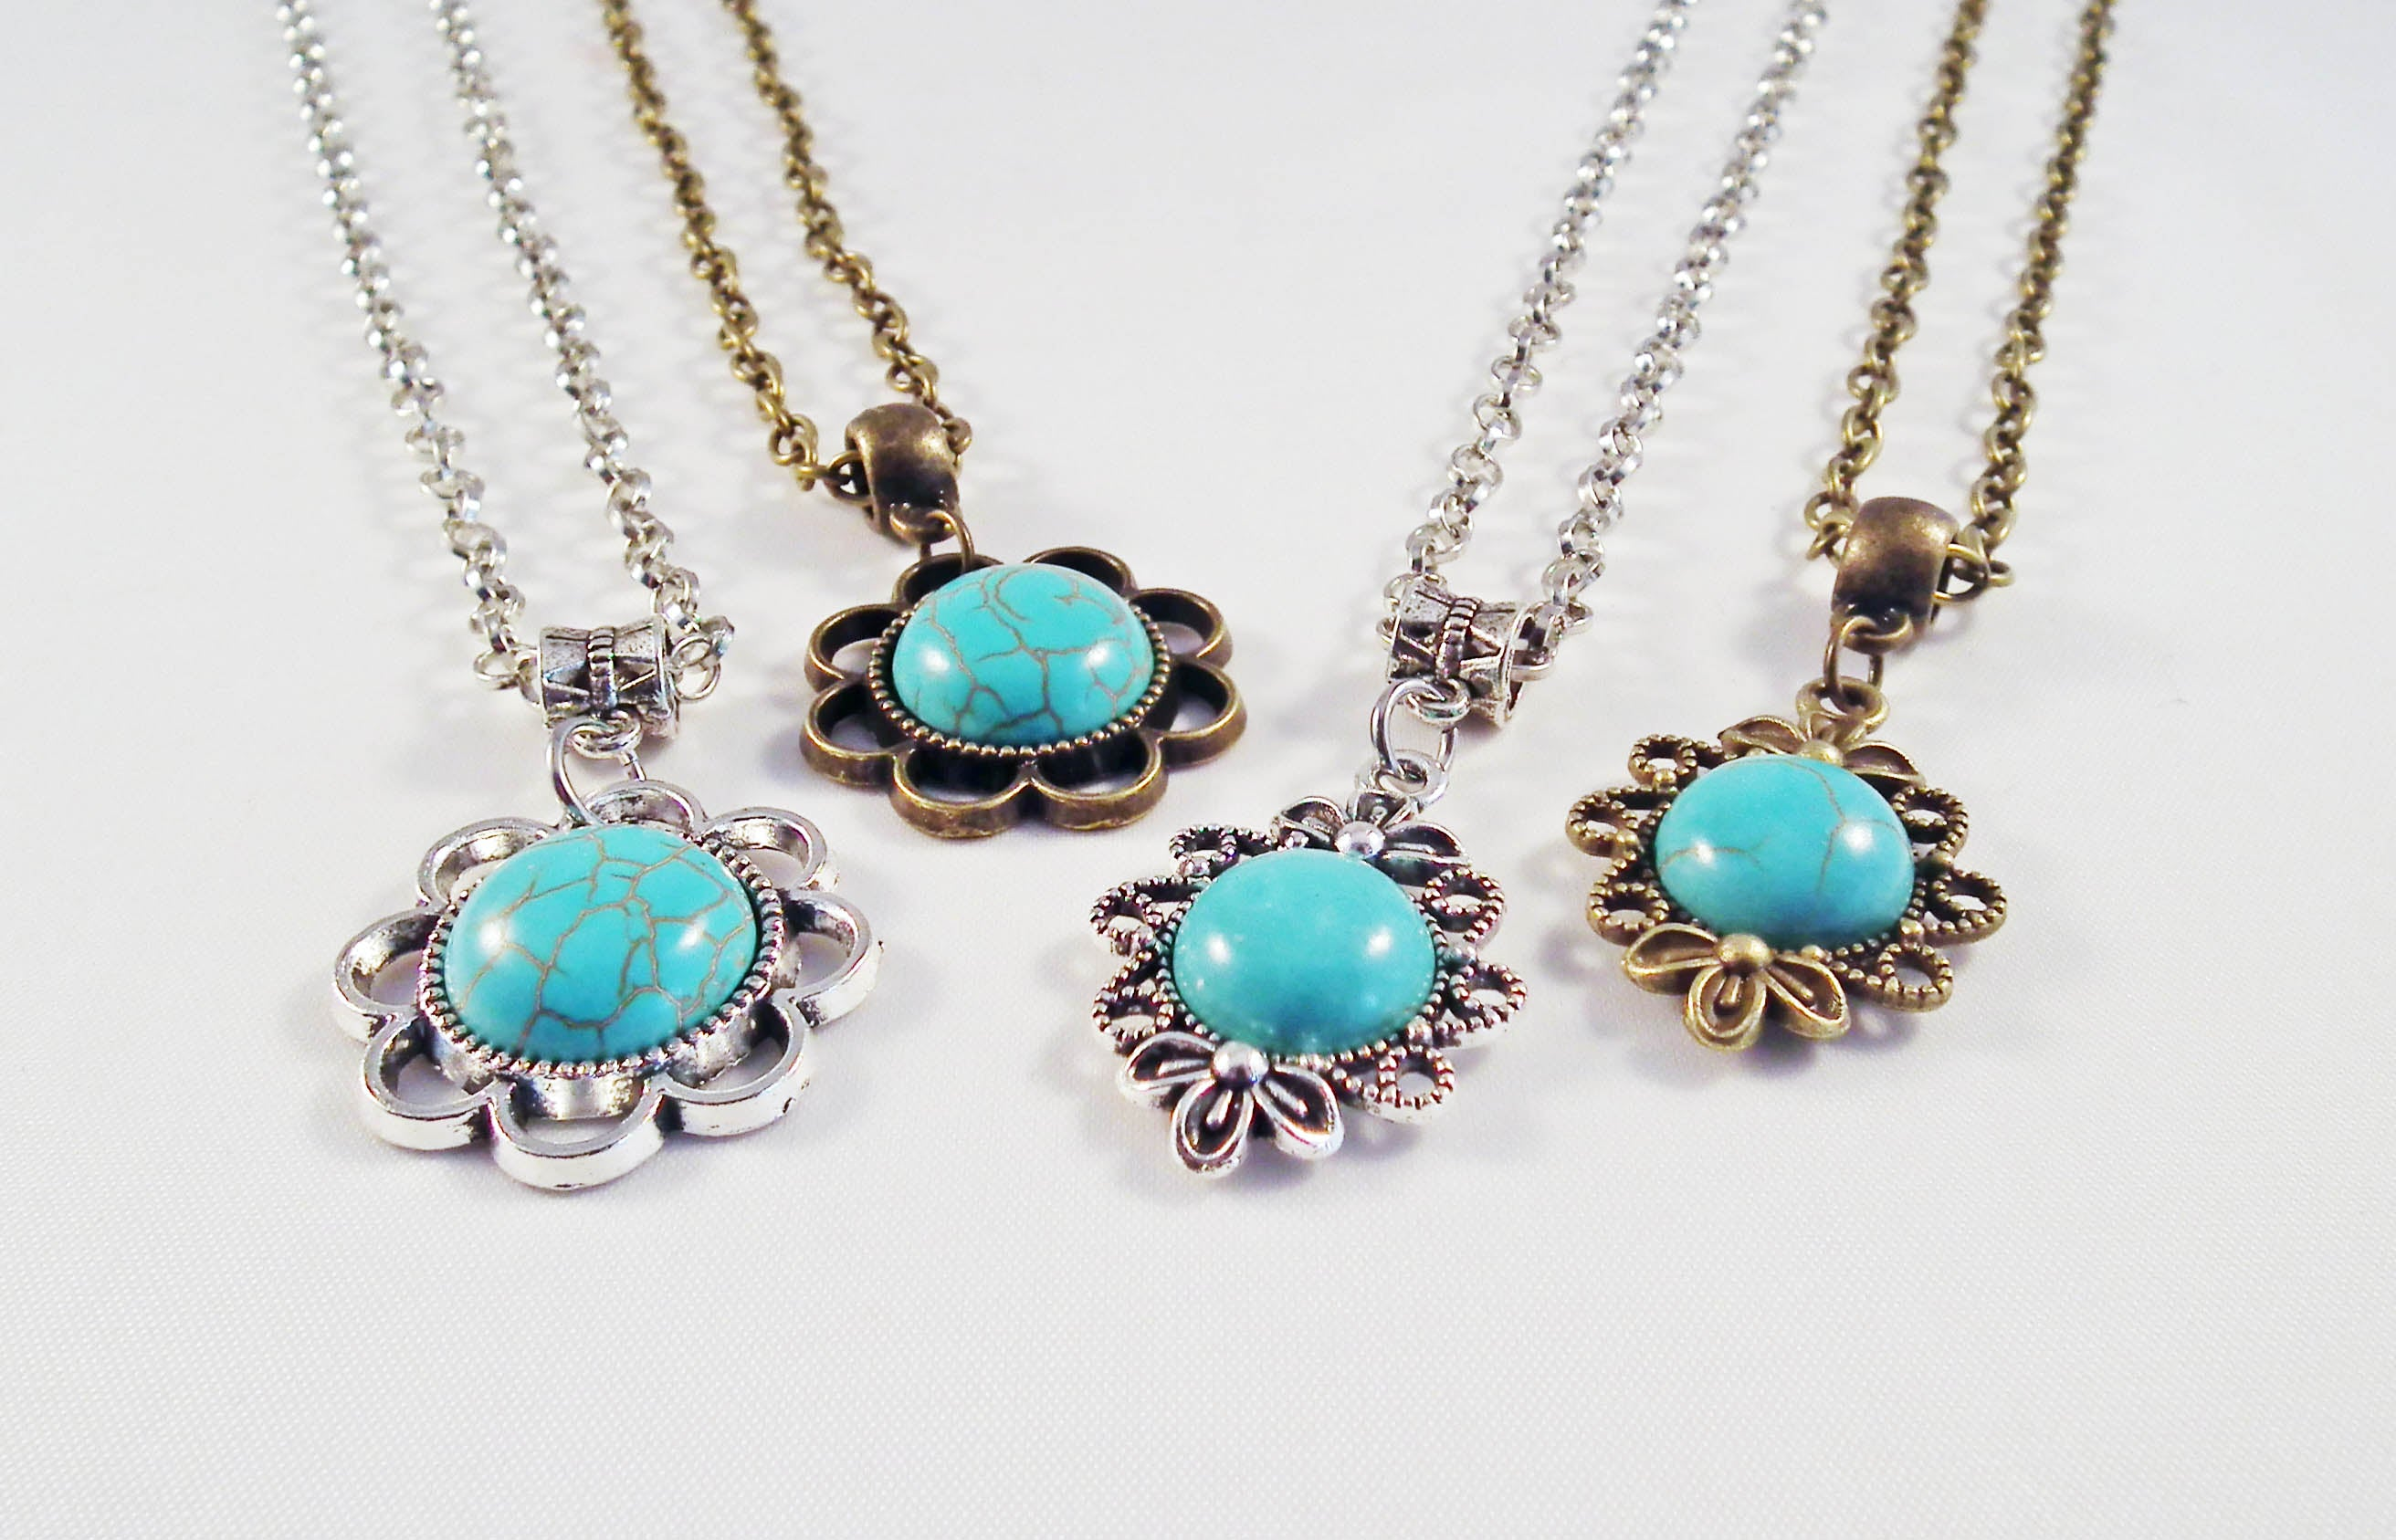 Bohemian Handmade Exclusive Turquoise Necklaces